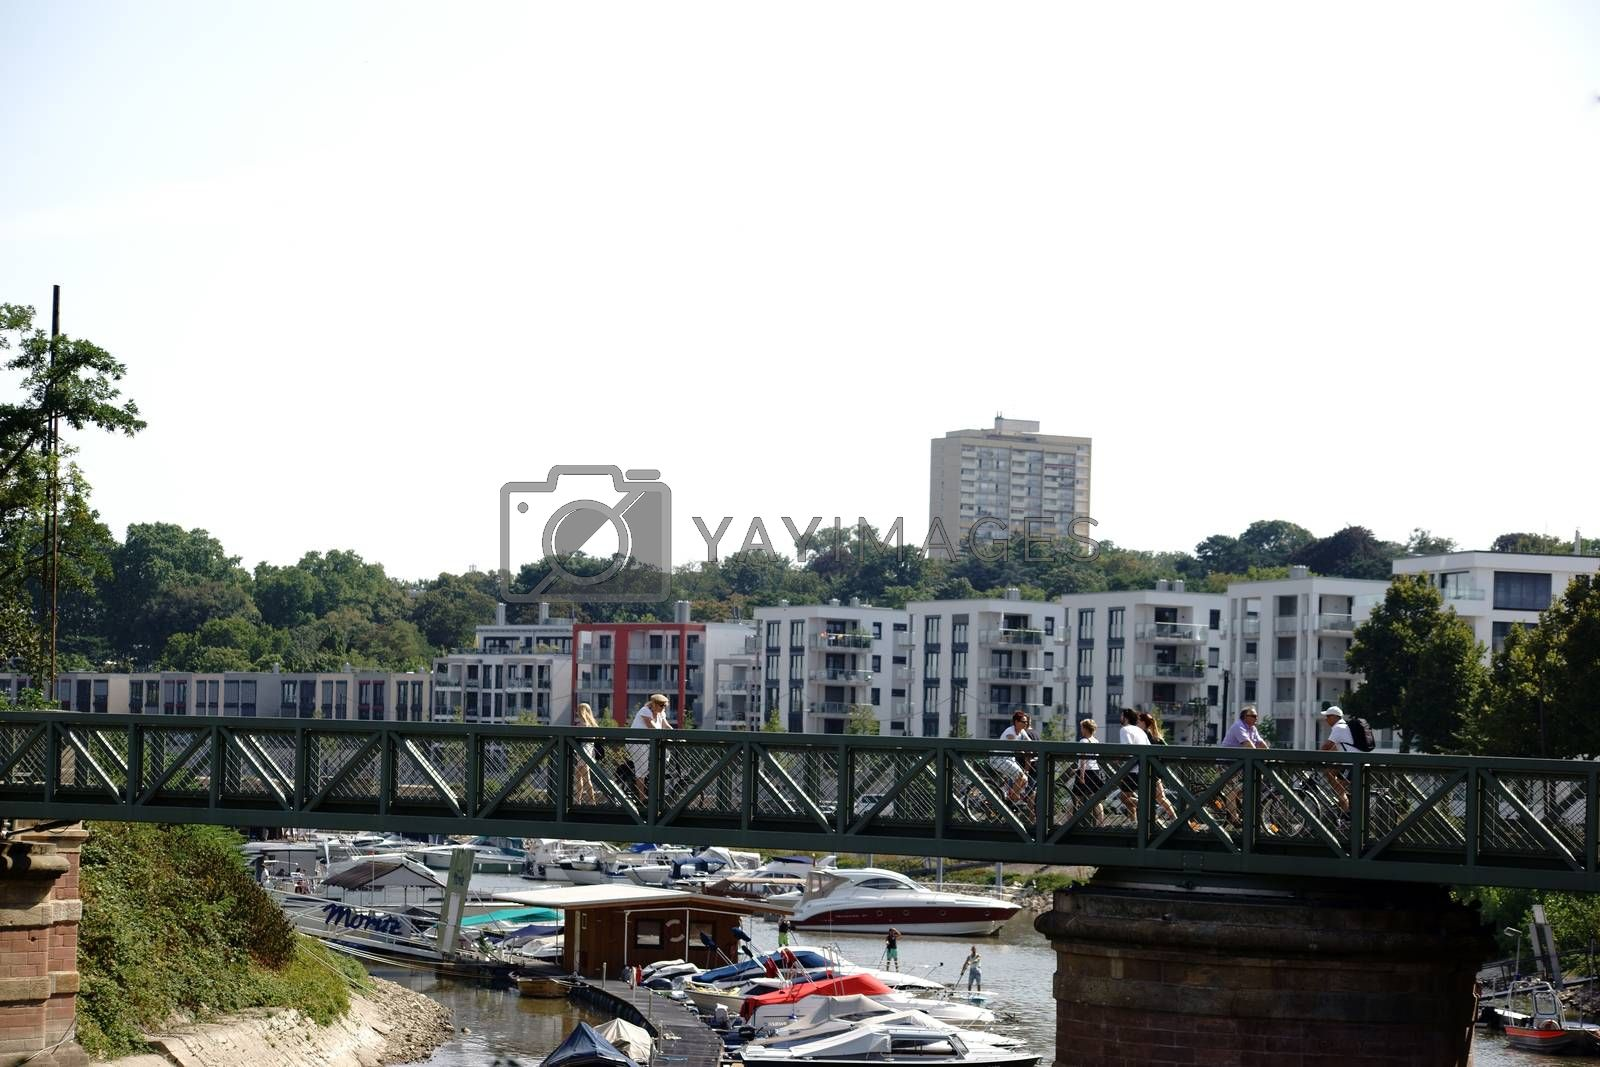 Mainz, Germany - August 22, 2015: Pedestrians and cyclists cross a bridge on the Victor Hugo banks with a river port and motorboats on August 22, 2015 in Mainz.